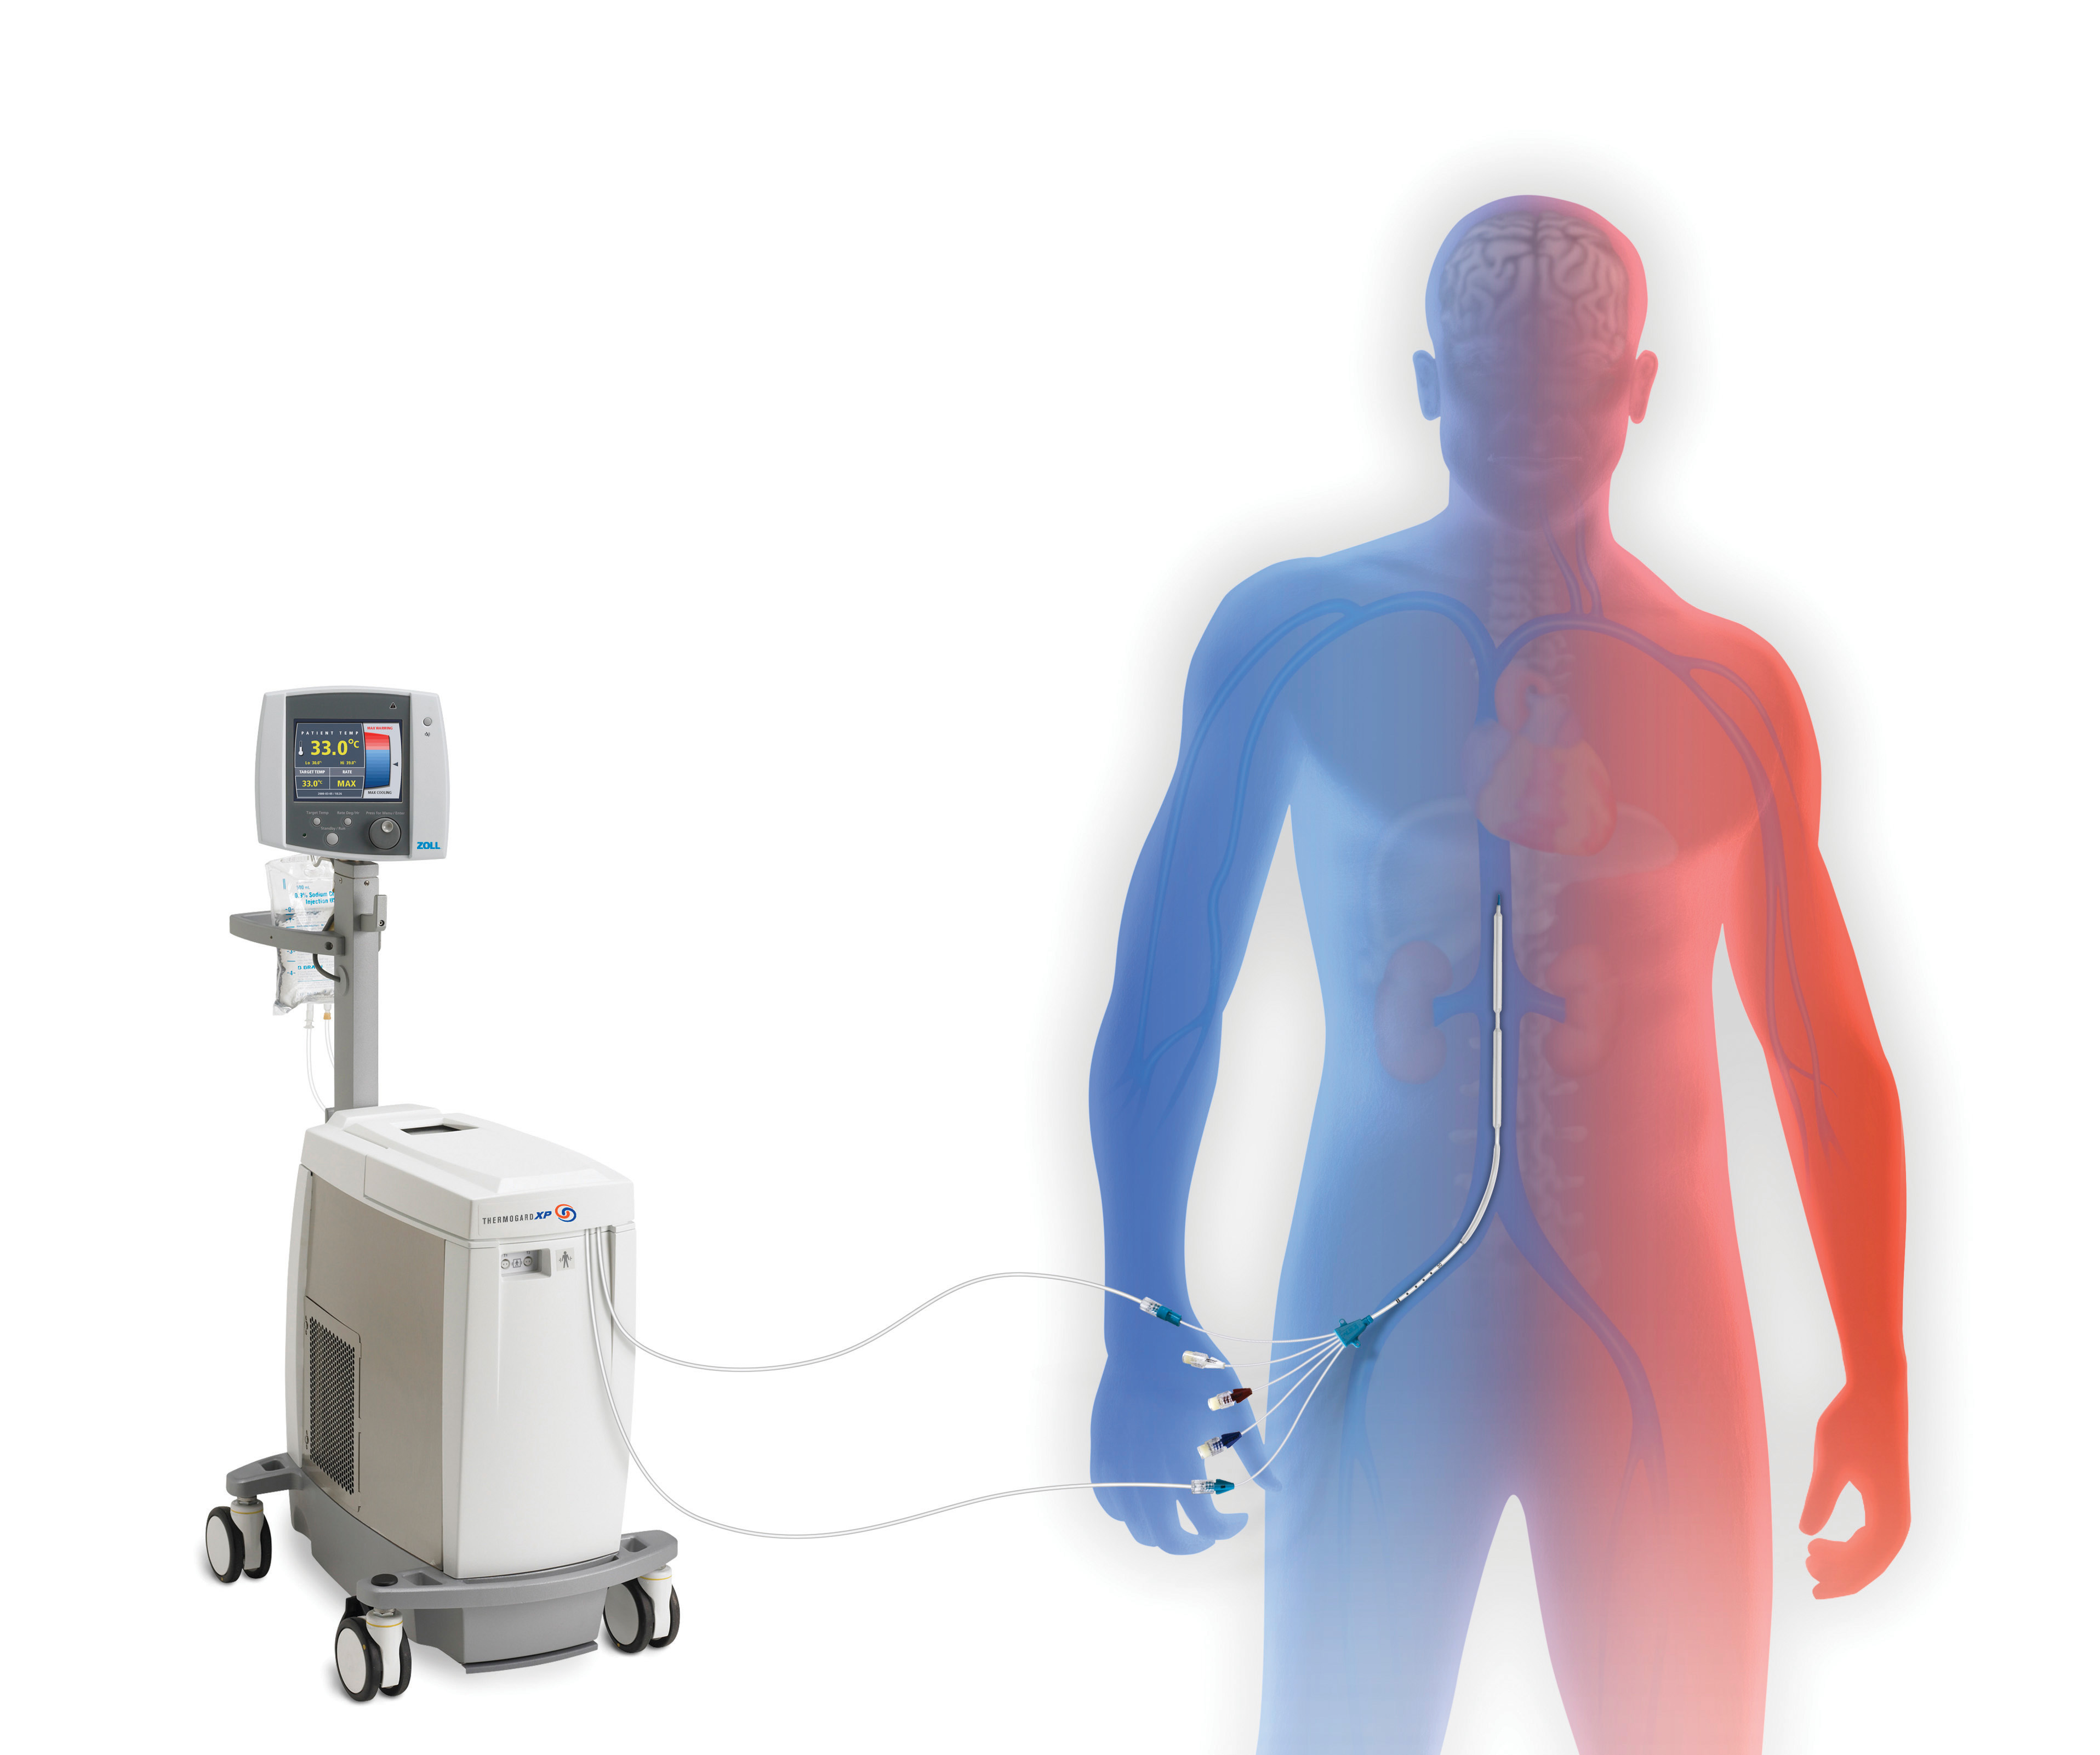 ZOLL Receives Approval to Market Intravascular Temperature Management Technology for Sudden Cardiac Arrest in Japan | Business Wire